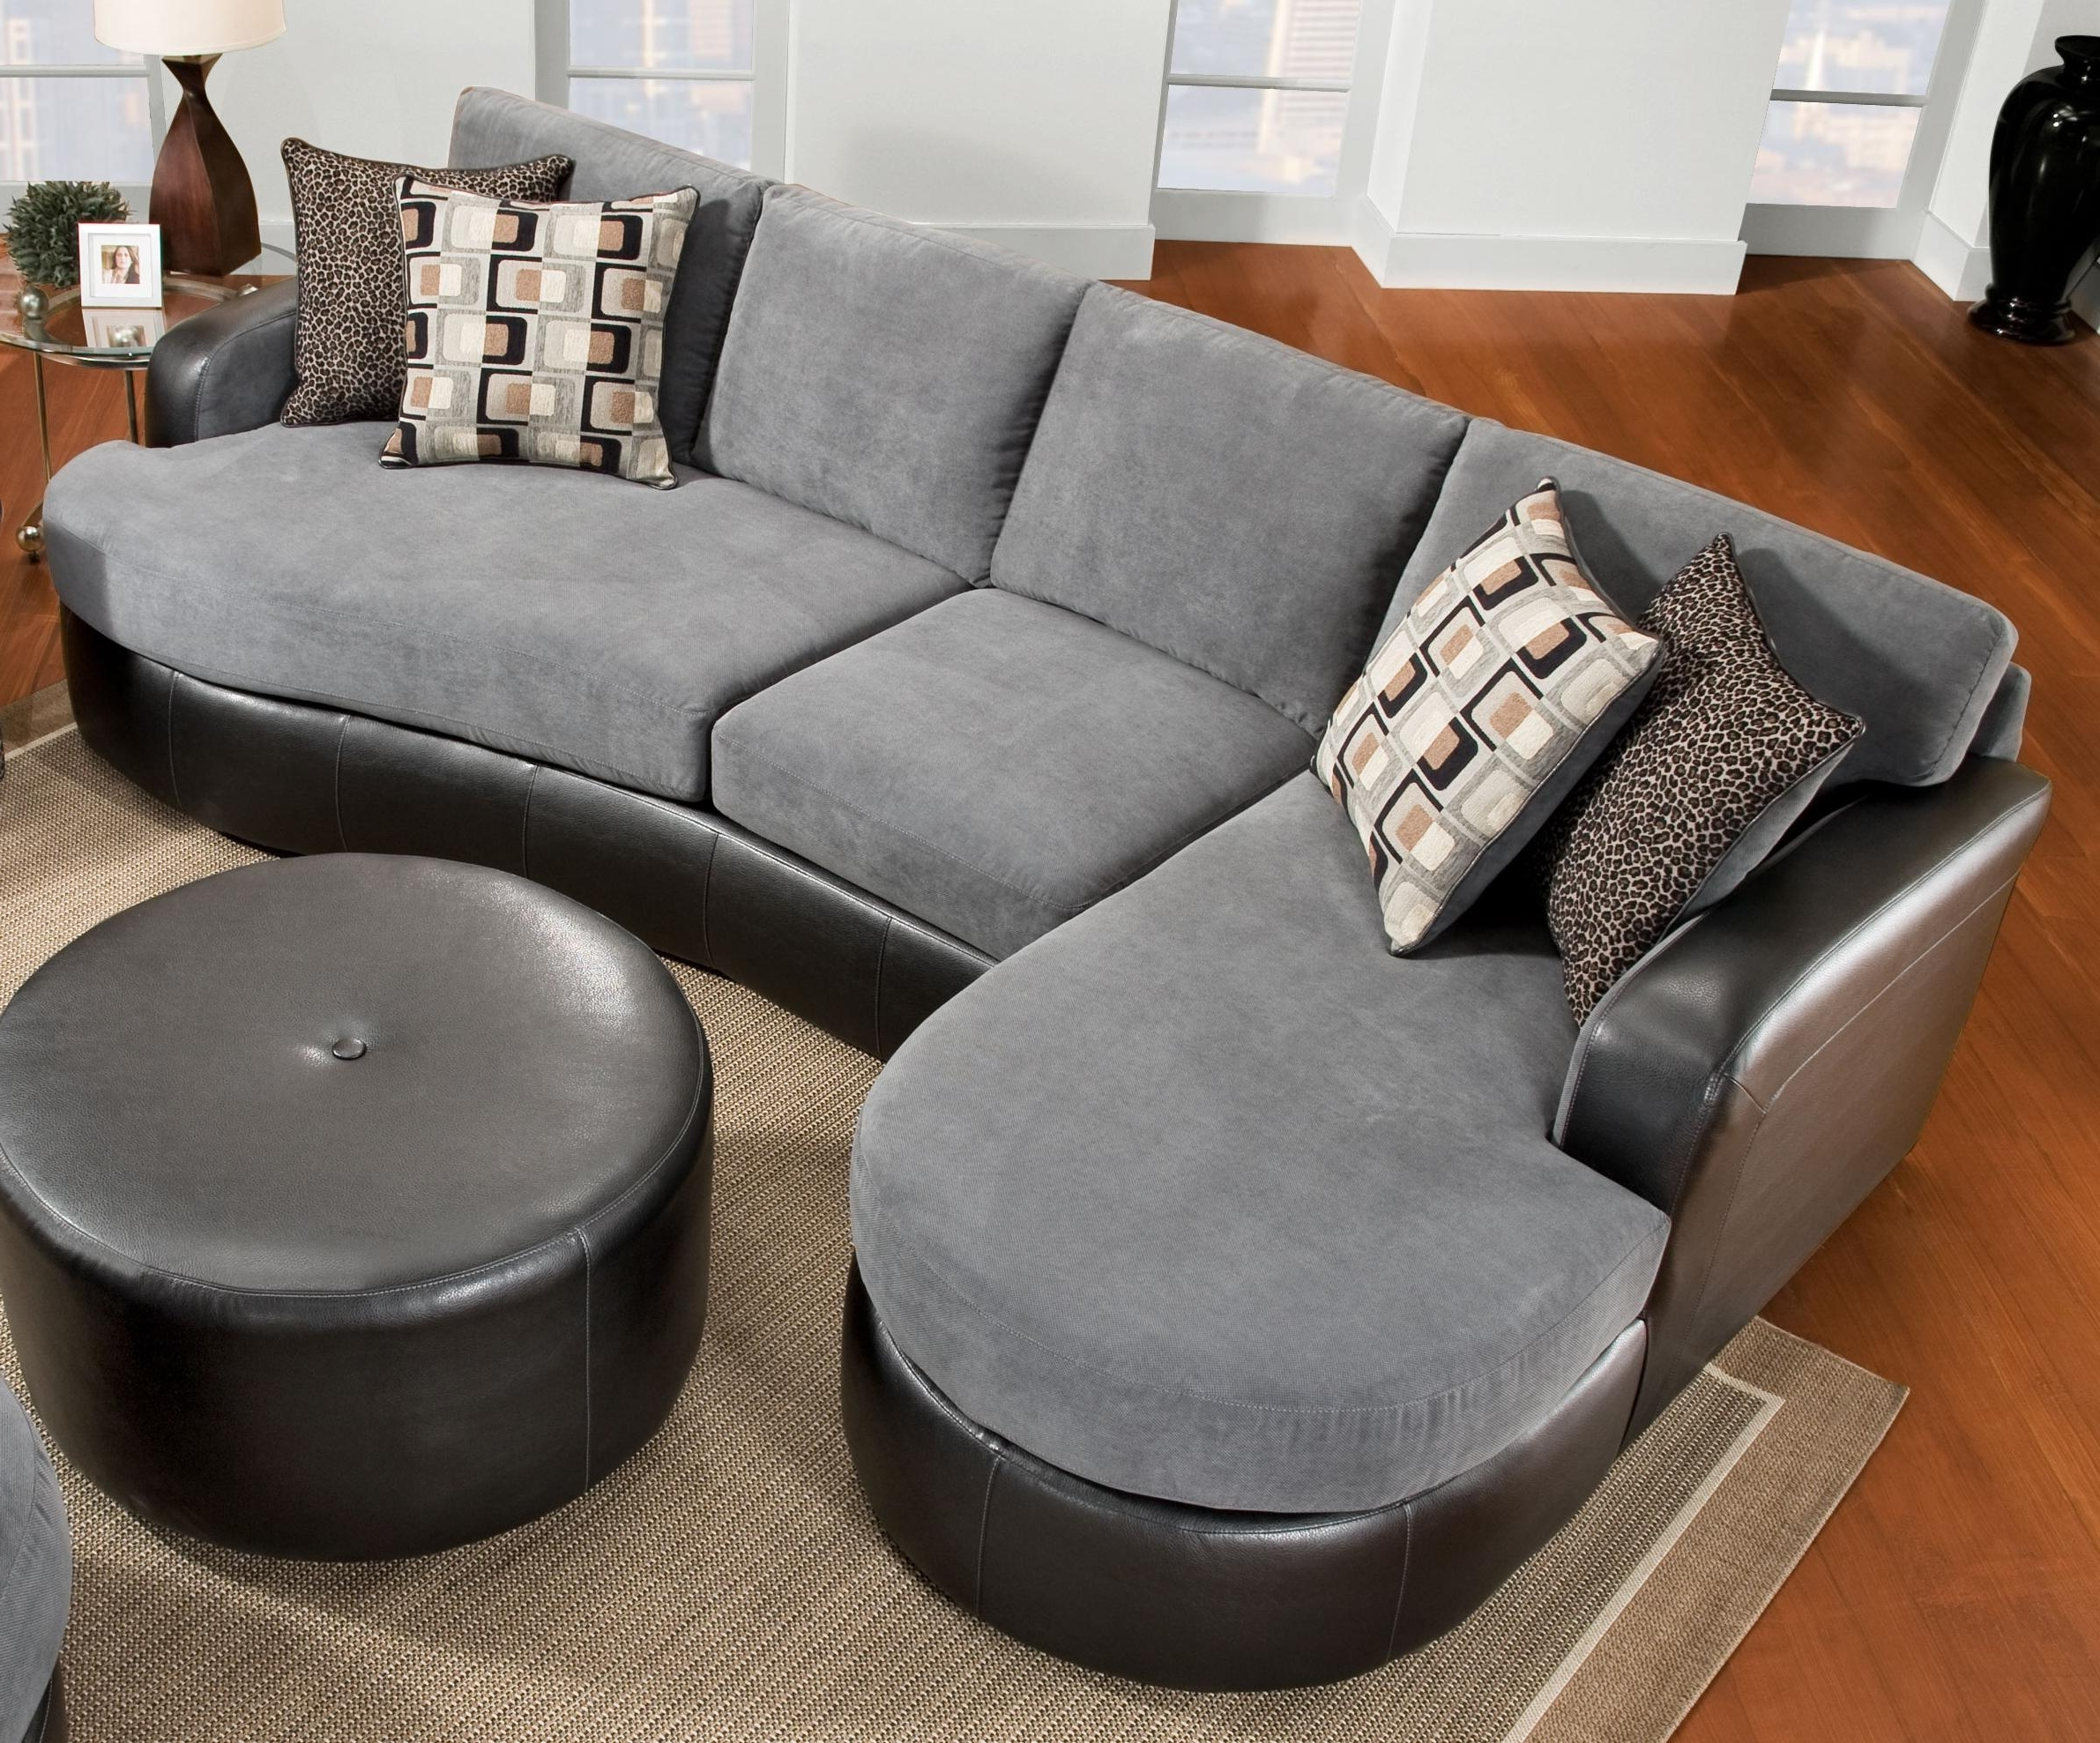 Elegant Sectional Sofas Throughout Most Recently Released Home Design : Dazzling Best Modern Fabric Sectional Sofas With (View 20 of 20)